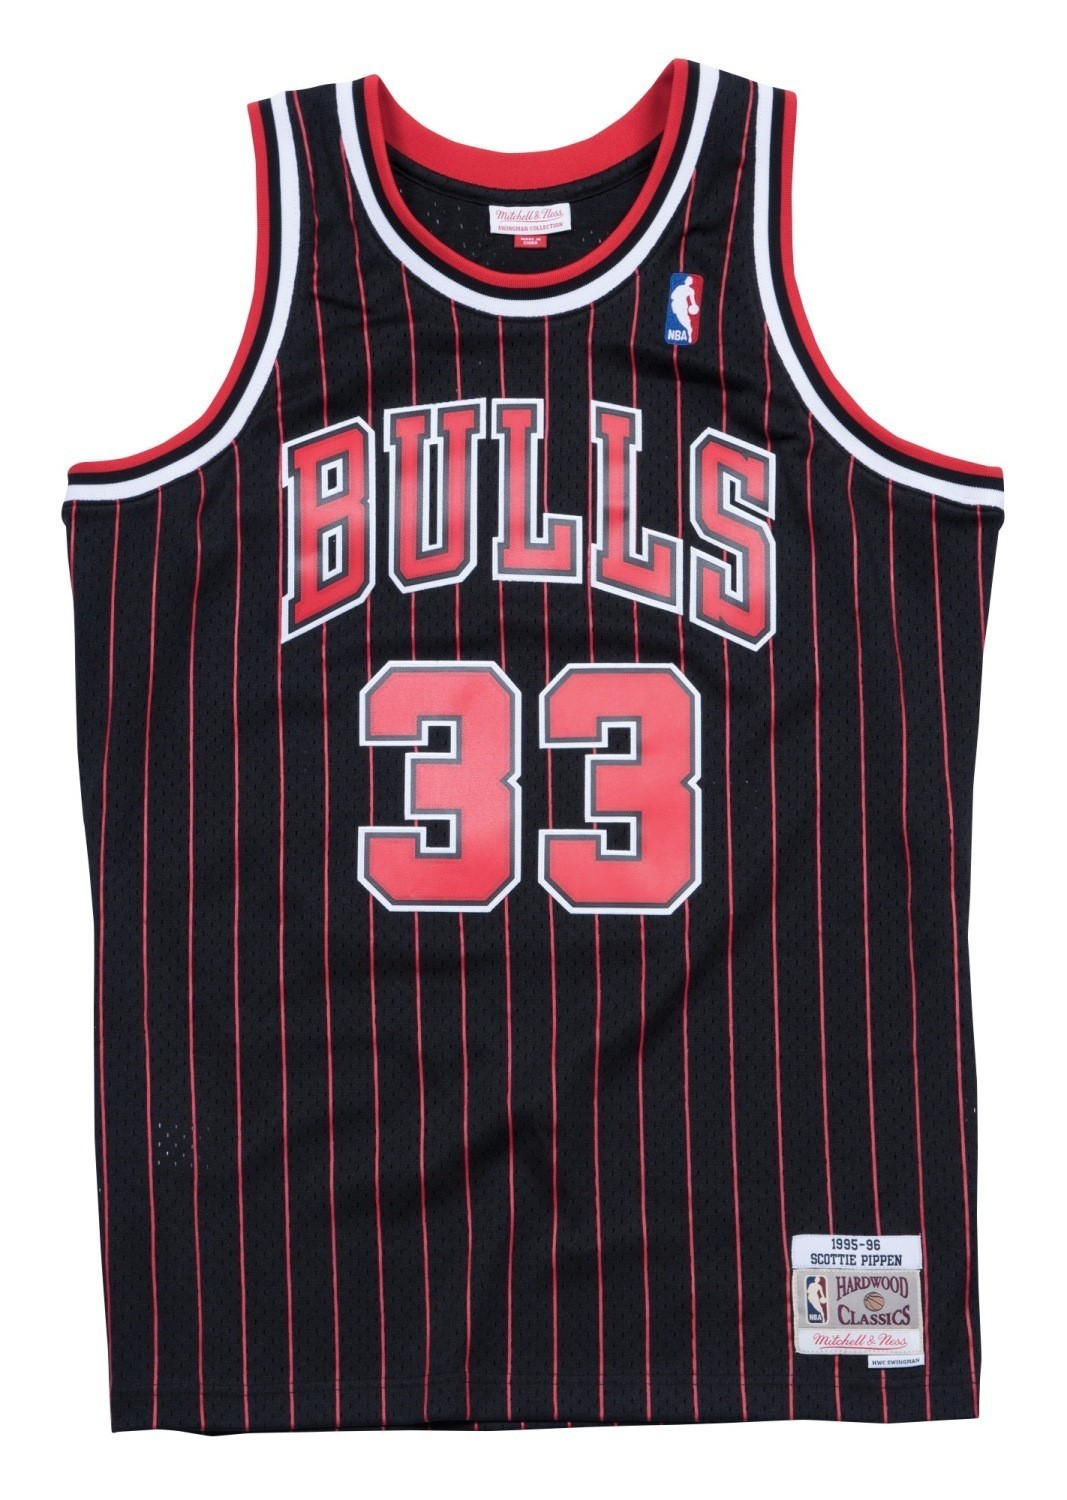 finest selection 927e3 9e556 Details about Scottie Pippen Chicago Bulls NBA Mitchell & Ness Youth  Throwback Swingman Jersey